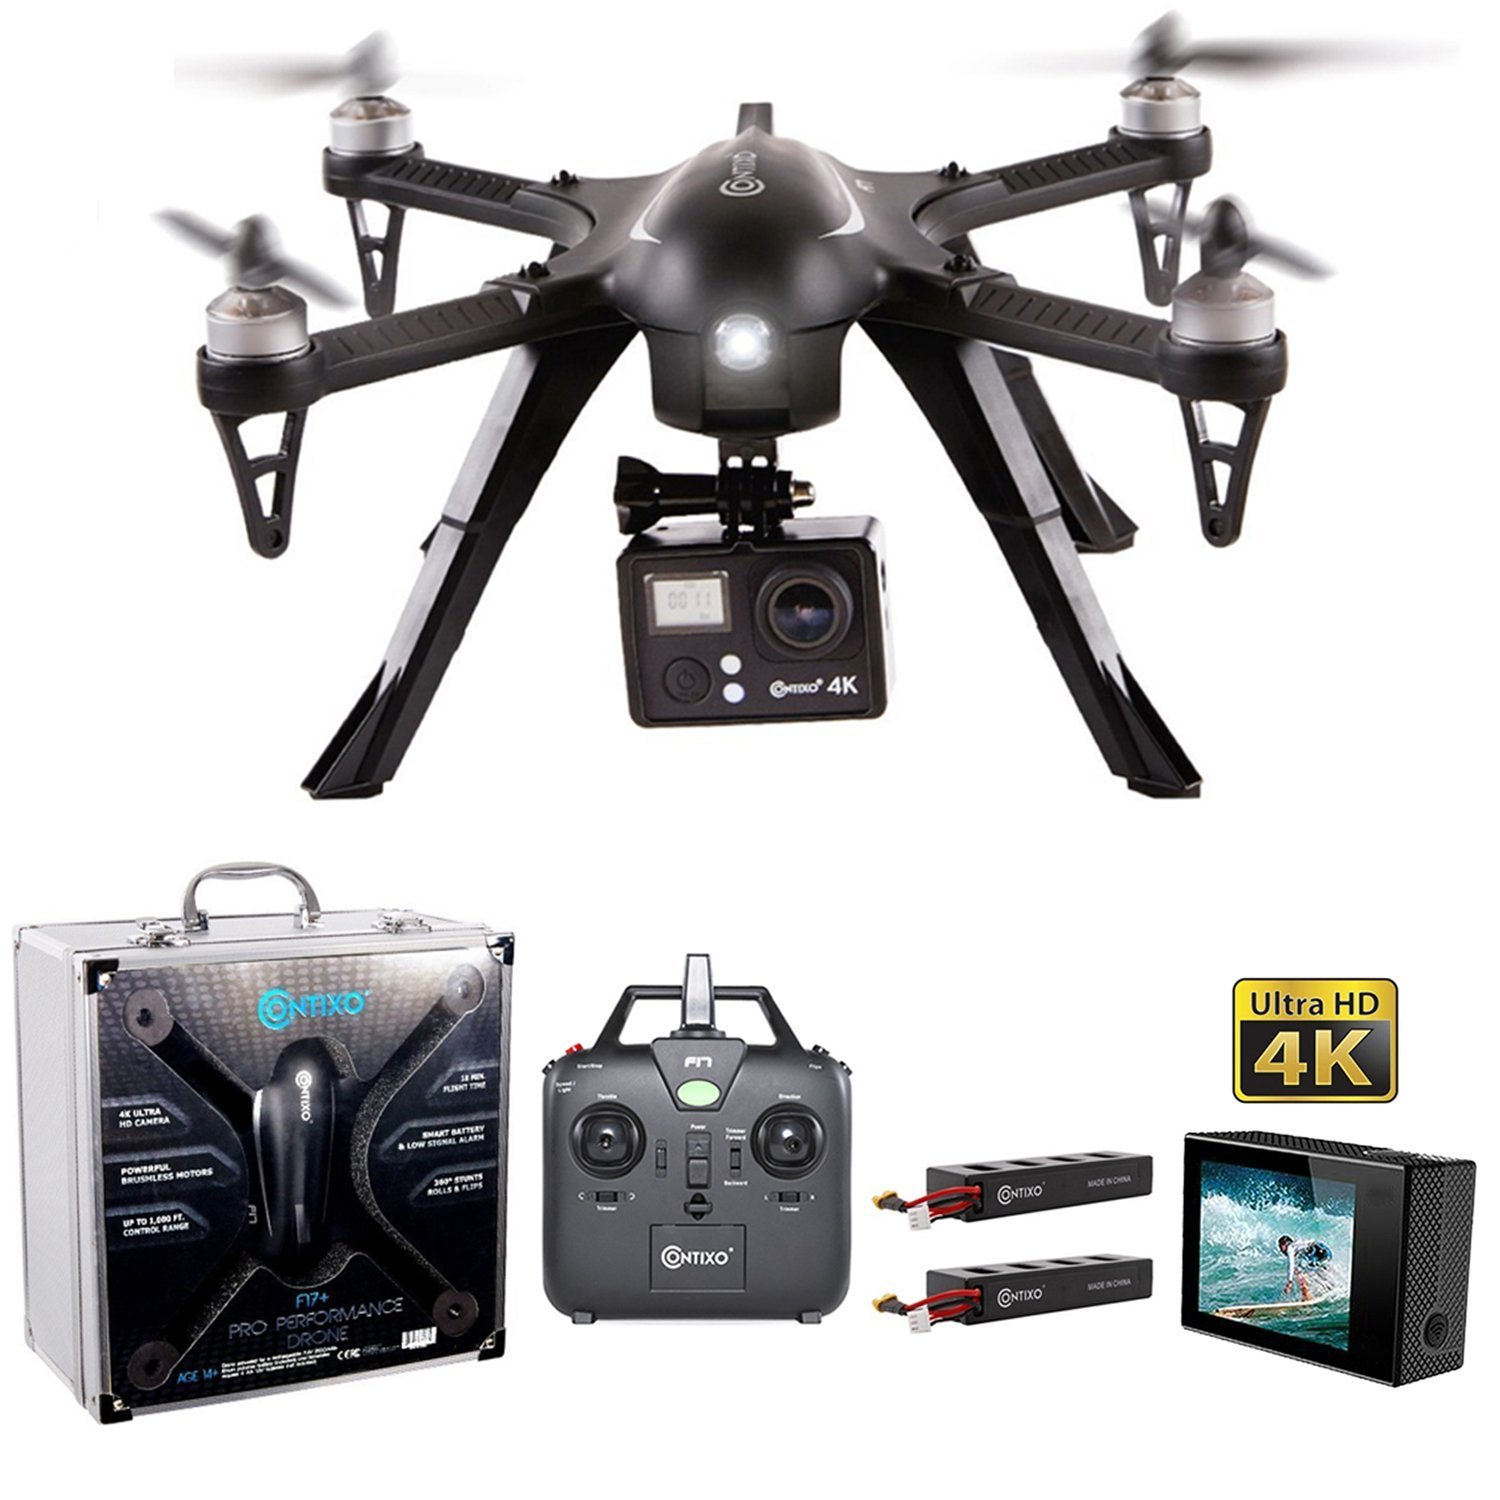 HOLIDAY SPECIAL! Contixo F17+ RC Quadcopter Photography Drone 4K Ultra HD Camera 16MP, Brushless Motors, 2 High Capacity Batteries, Supports GoPro Hero Cameras, Alum Hard Case- Best Gift For Christmas by Contixo